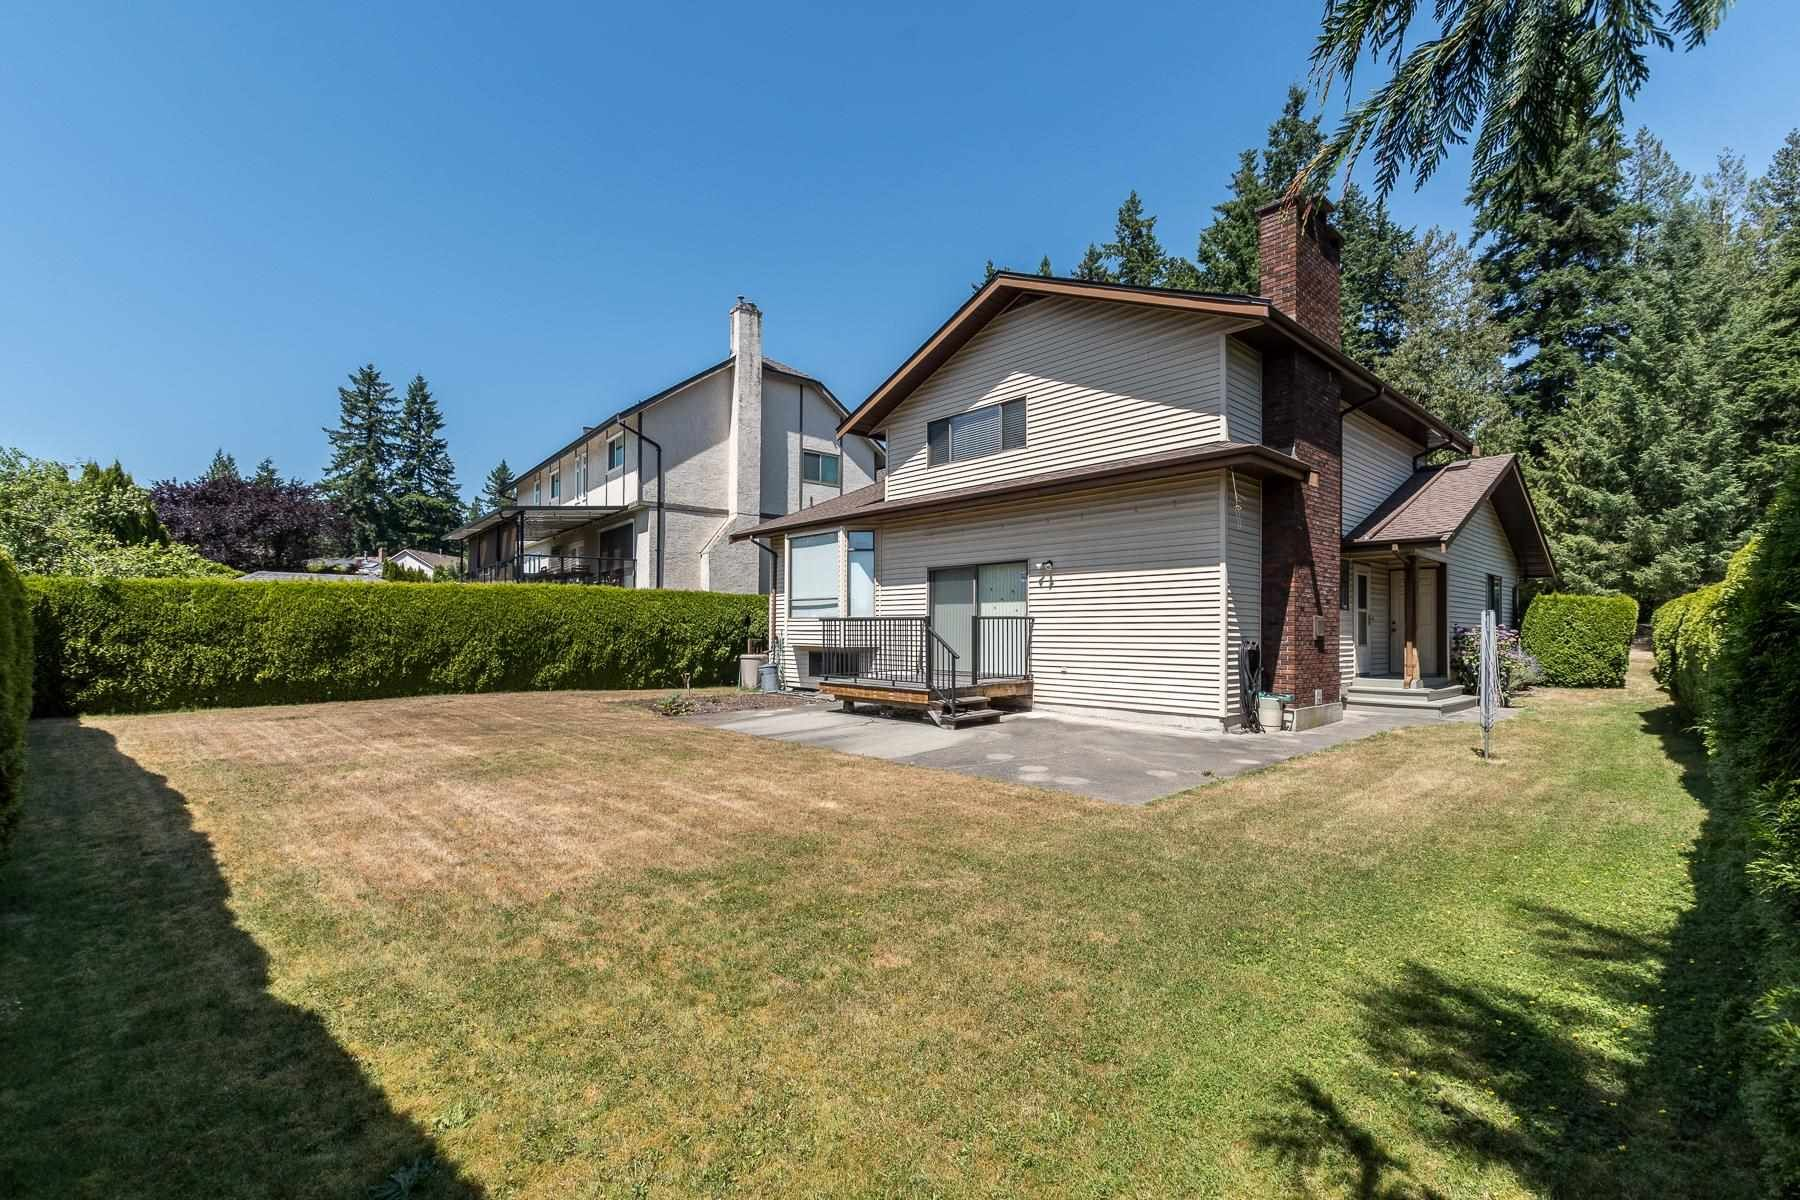 """Photo 38: Photos: 378 BALFOUR Drive in Coquitlam: Coquitlam East House for sale in """"DARTMOOR HEIGHTS"""" : MLS®# R2600428"""